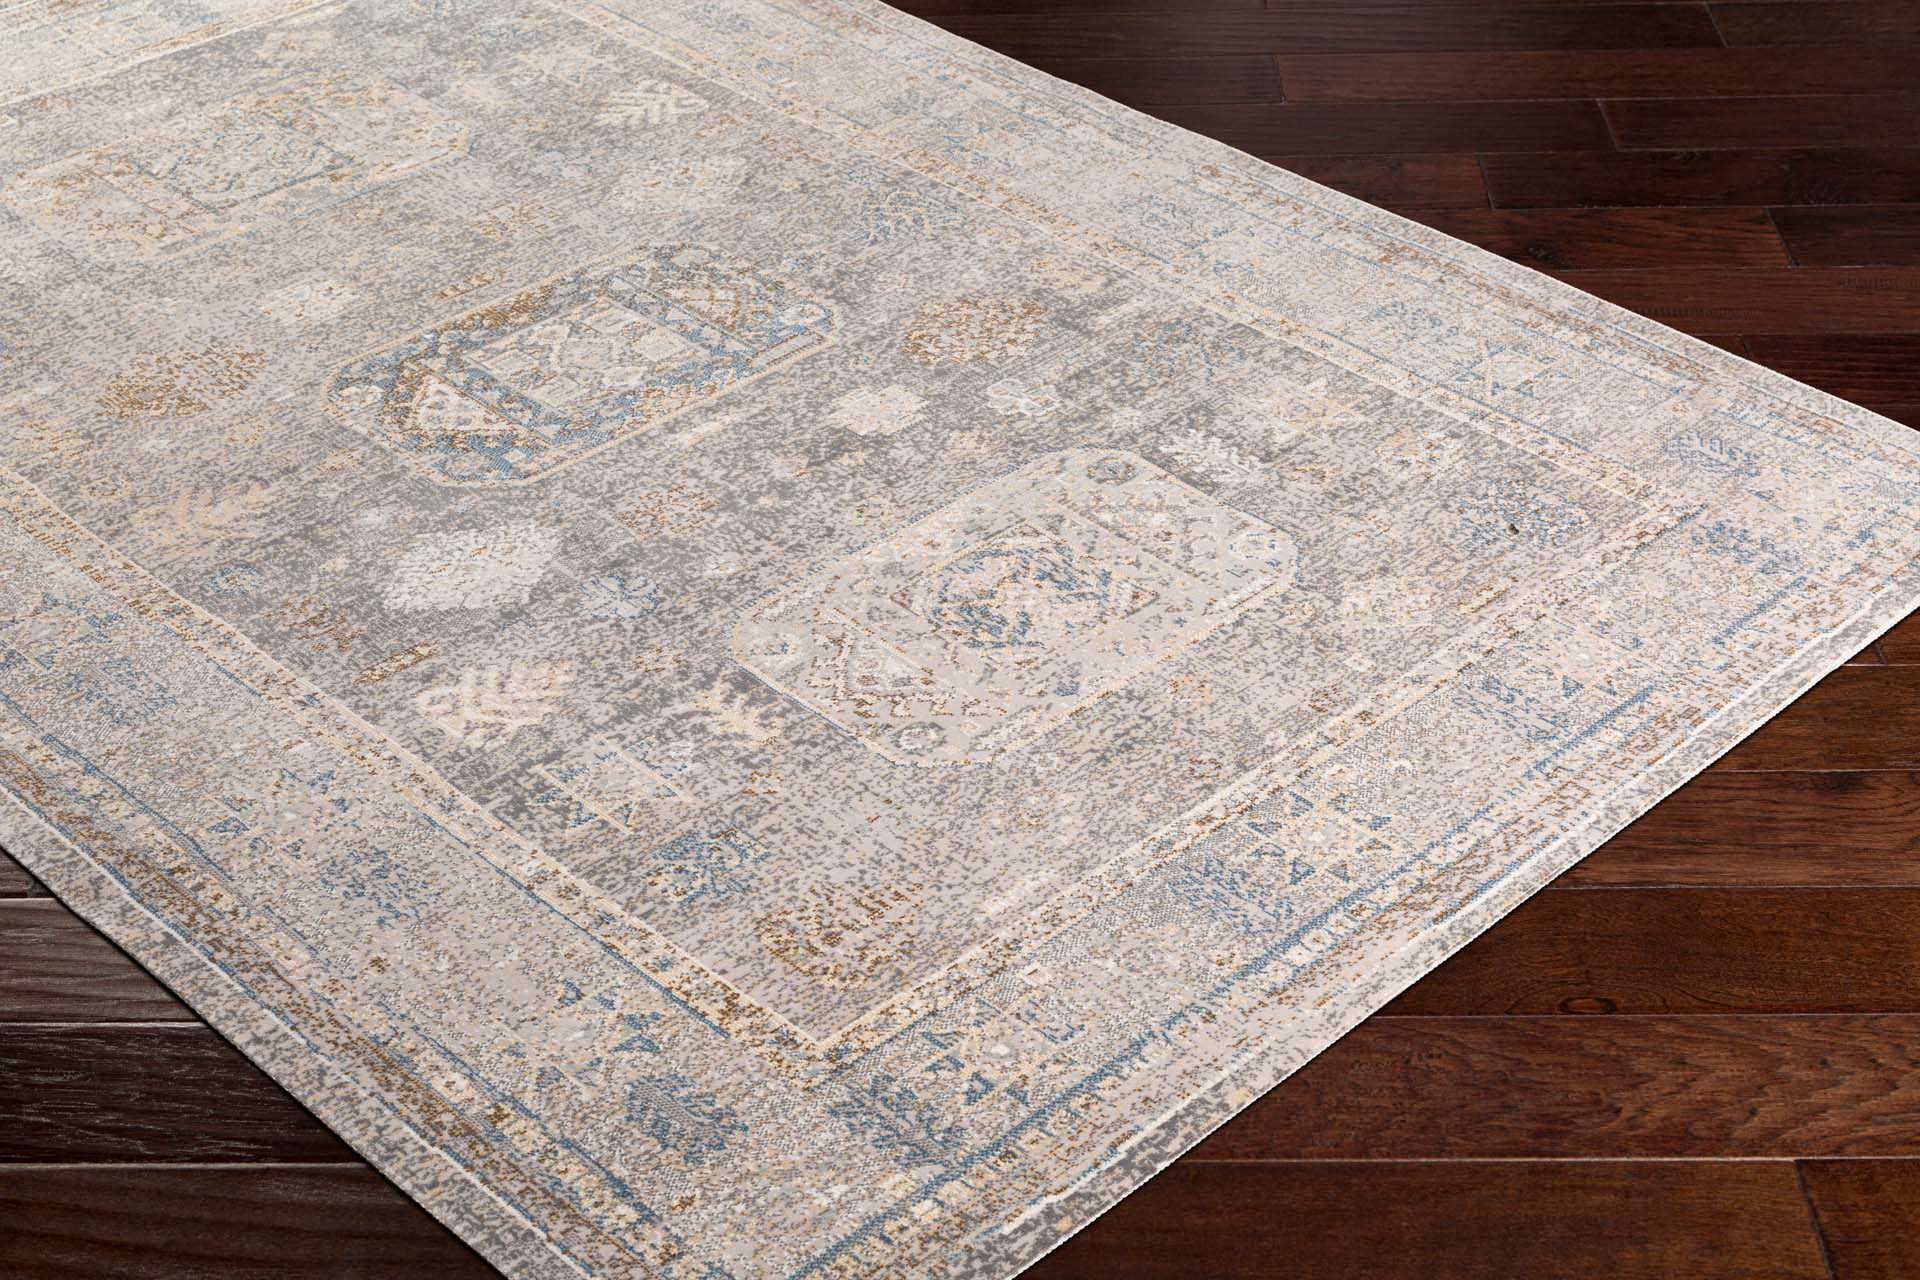 Surya Stonewashed Snw 2306 Area Rug The Dump Luxe